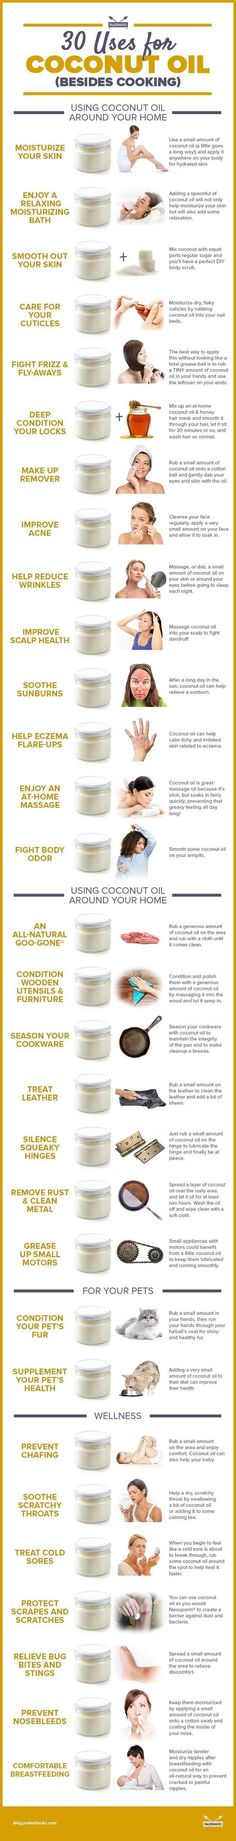 Use Coconut Oil Health - aceite de coco - 9 Reasons to Use Coconut Oil Daily Coconut Oil Will Set You Free — and Improve Your Health!Coconut Oil Fuels Your Metabolism! Beauty Care, Diy Beauty, Beauty Hacks, Pure Beauty, Natural Beauty, Home Beauty Tips, Beauty Tips For Face, Organic Beauty, Beauty Ideas